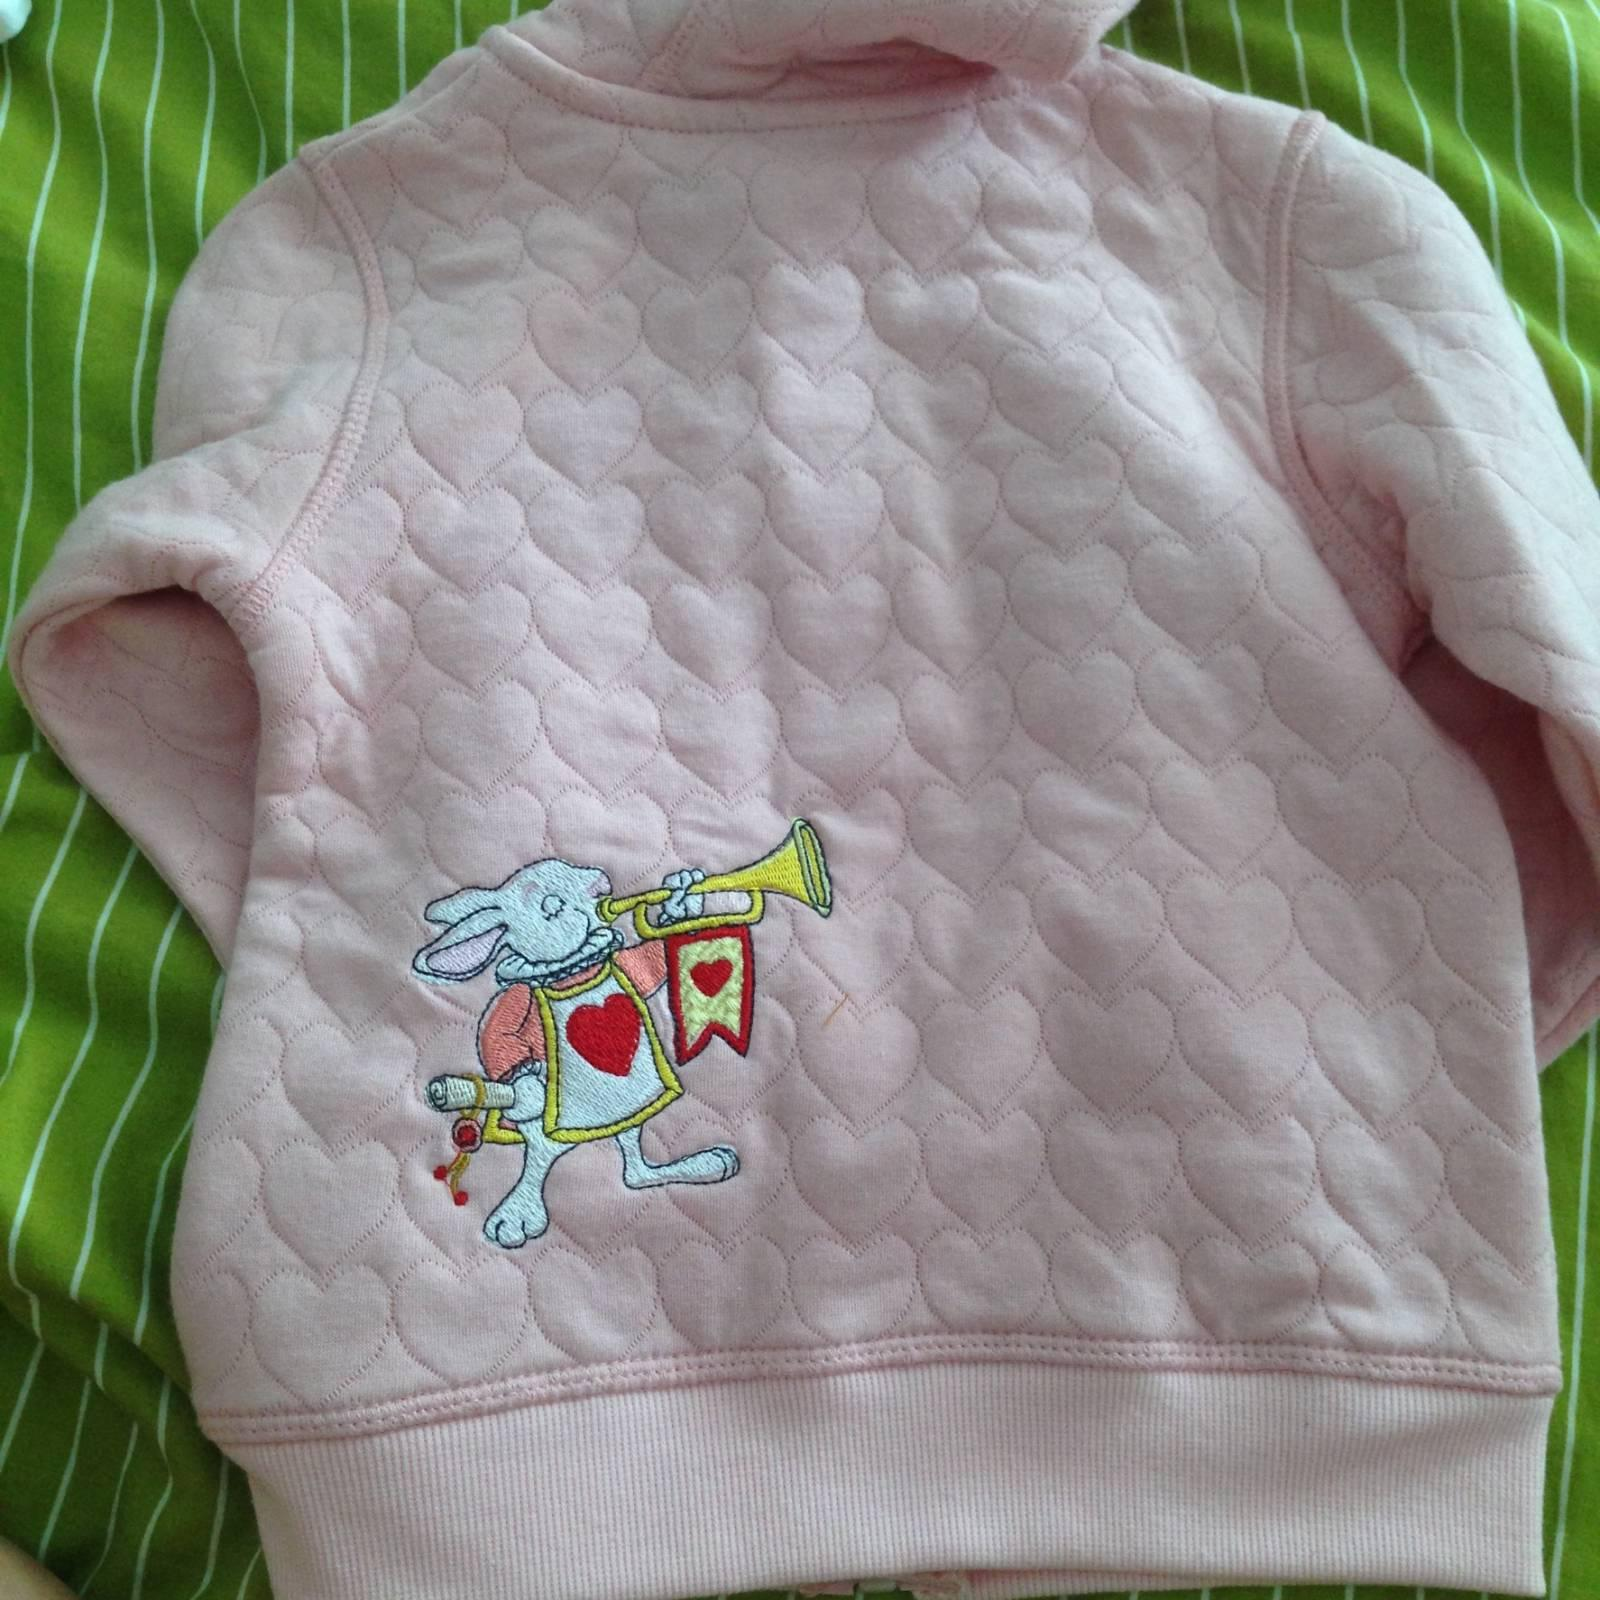 Outfit with Rabbit trumpeter embroidery design